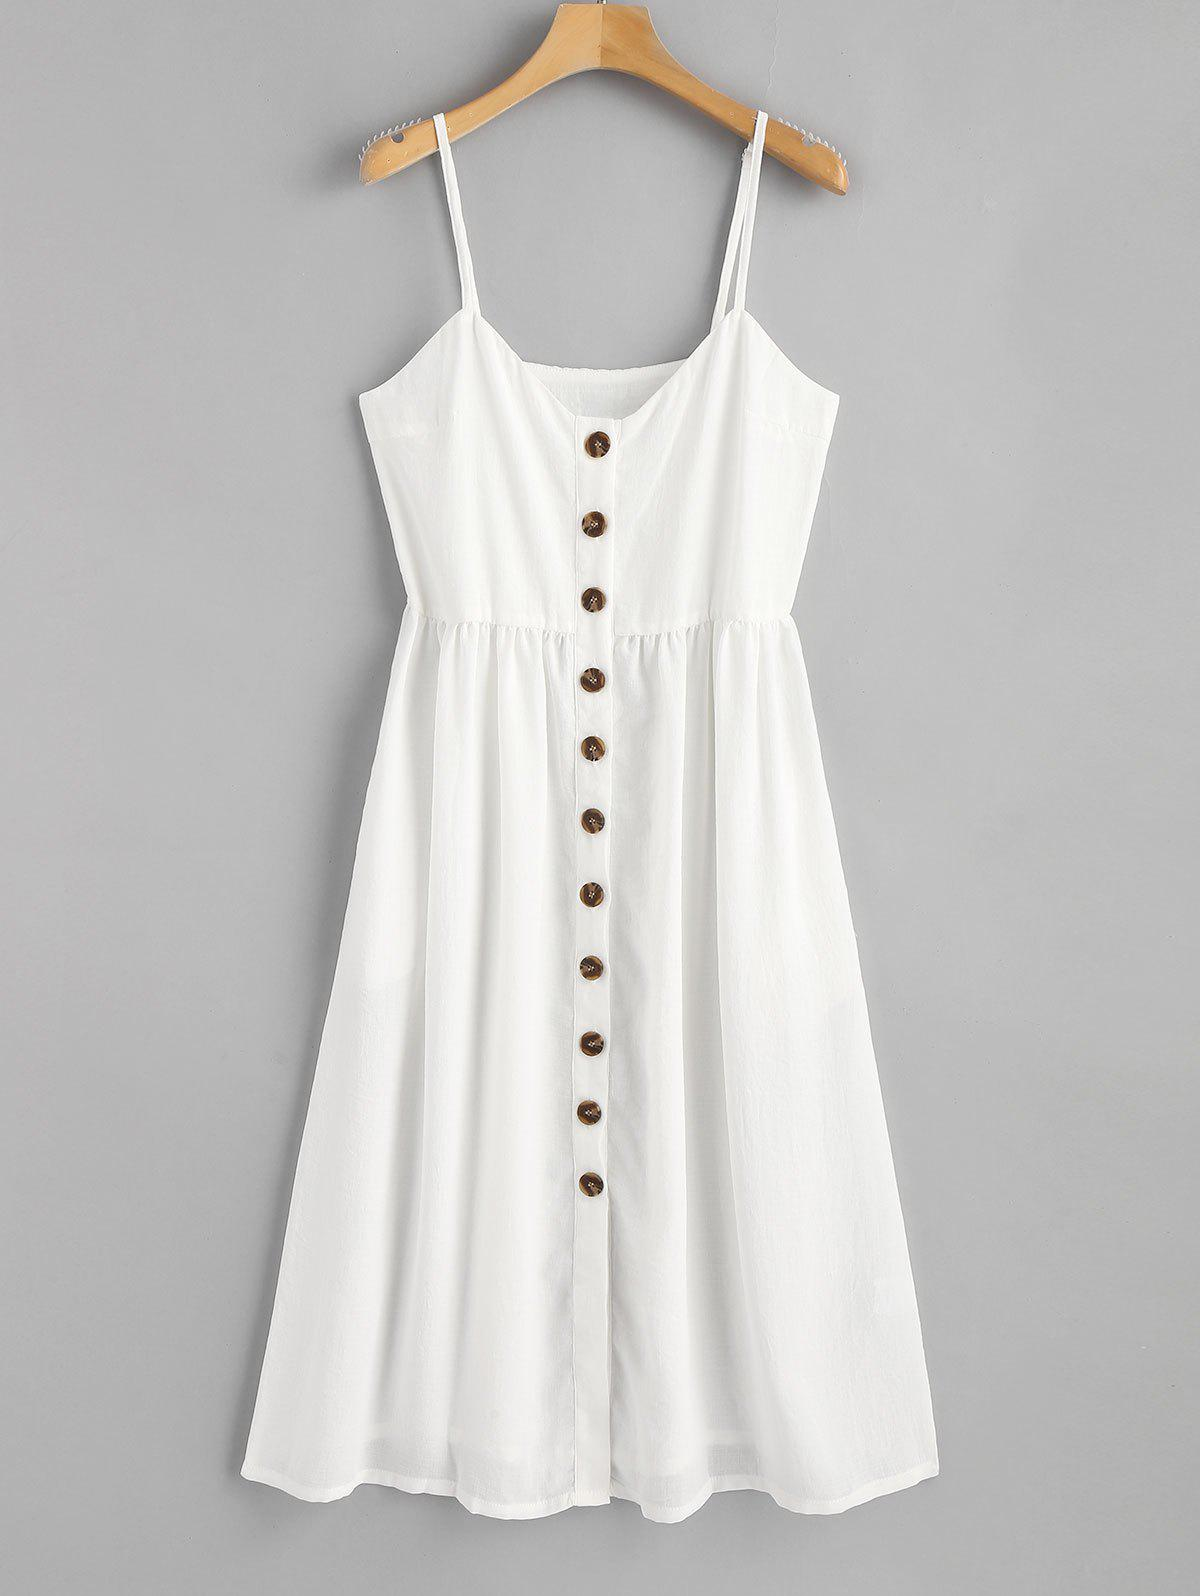 Cami Button Up Casual